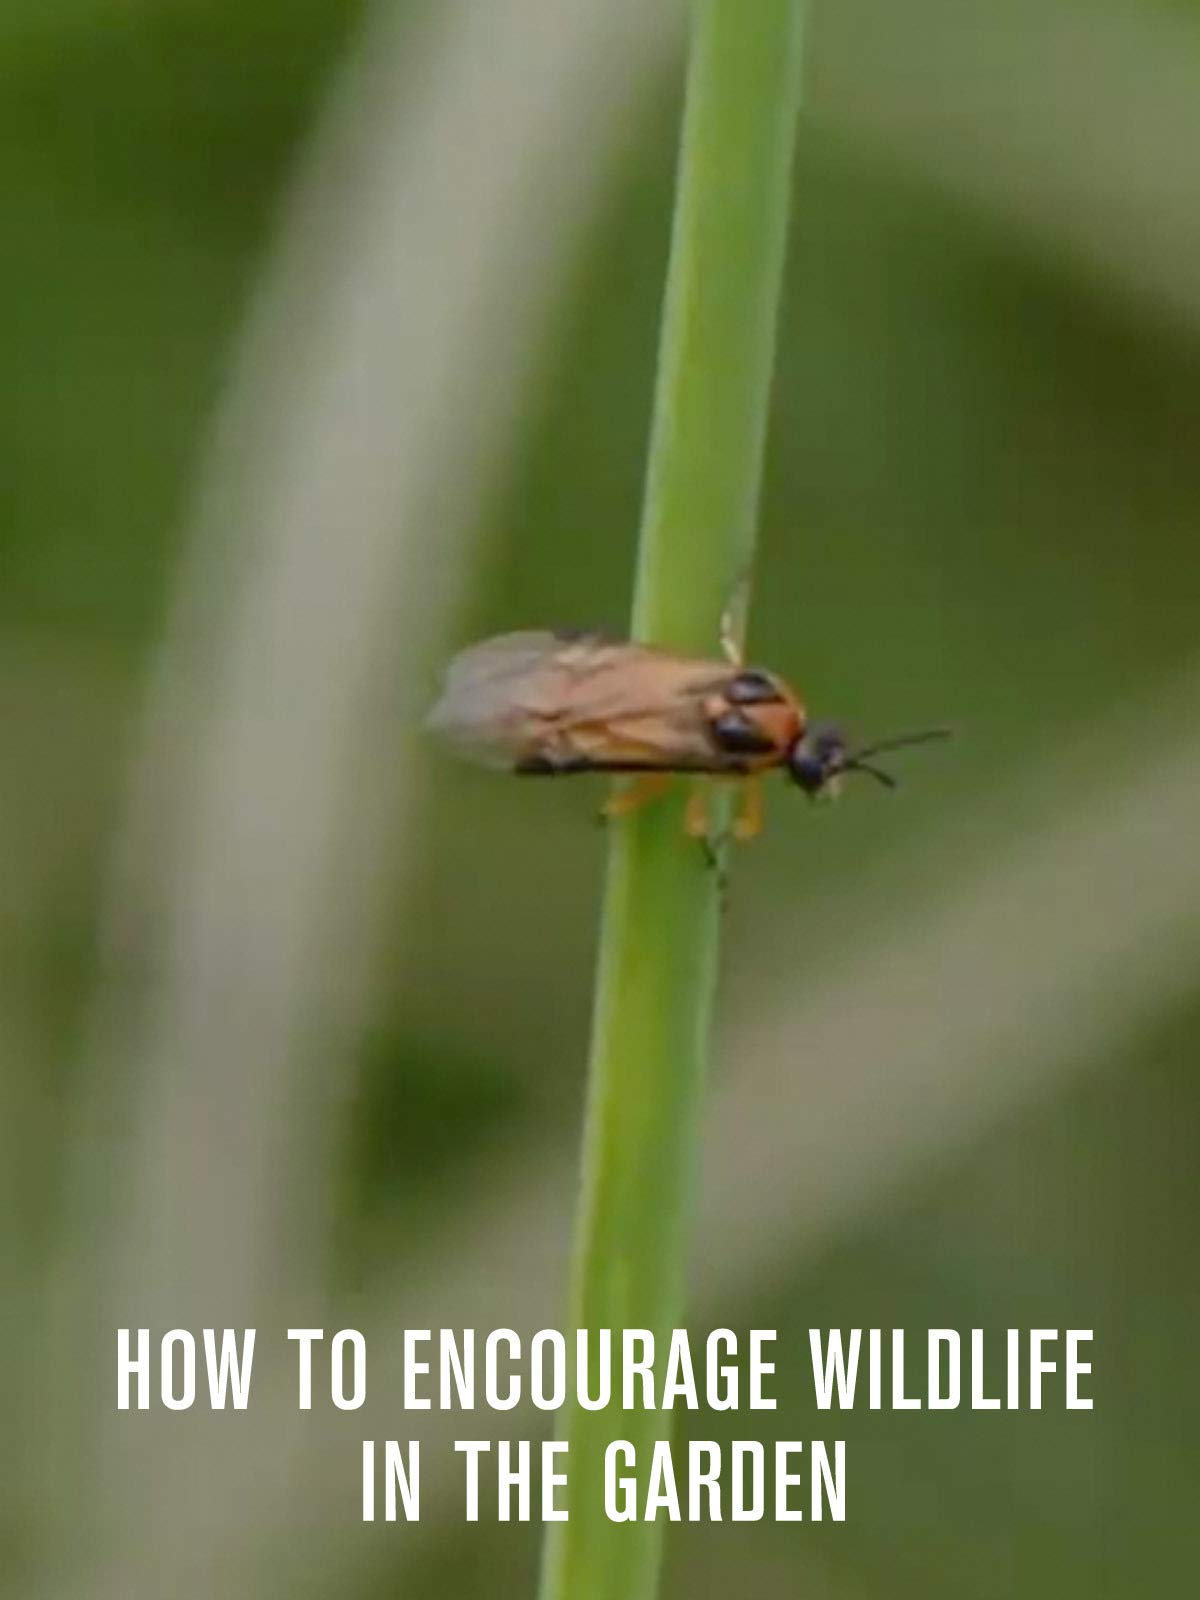 How To Encourage Wildlife In The Garden